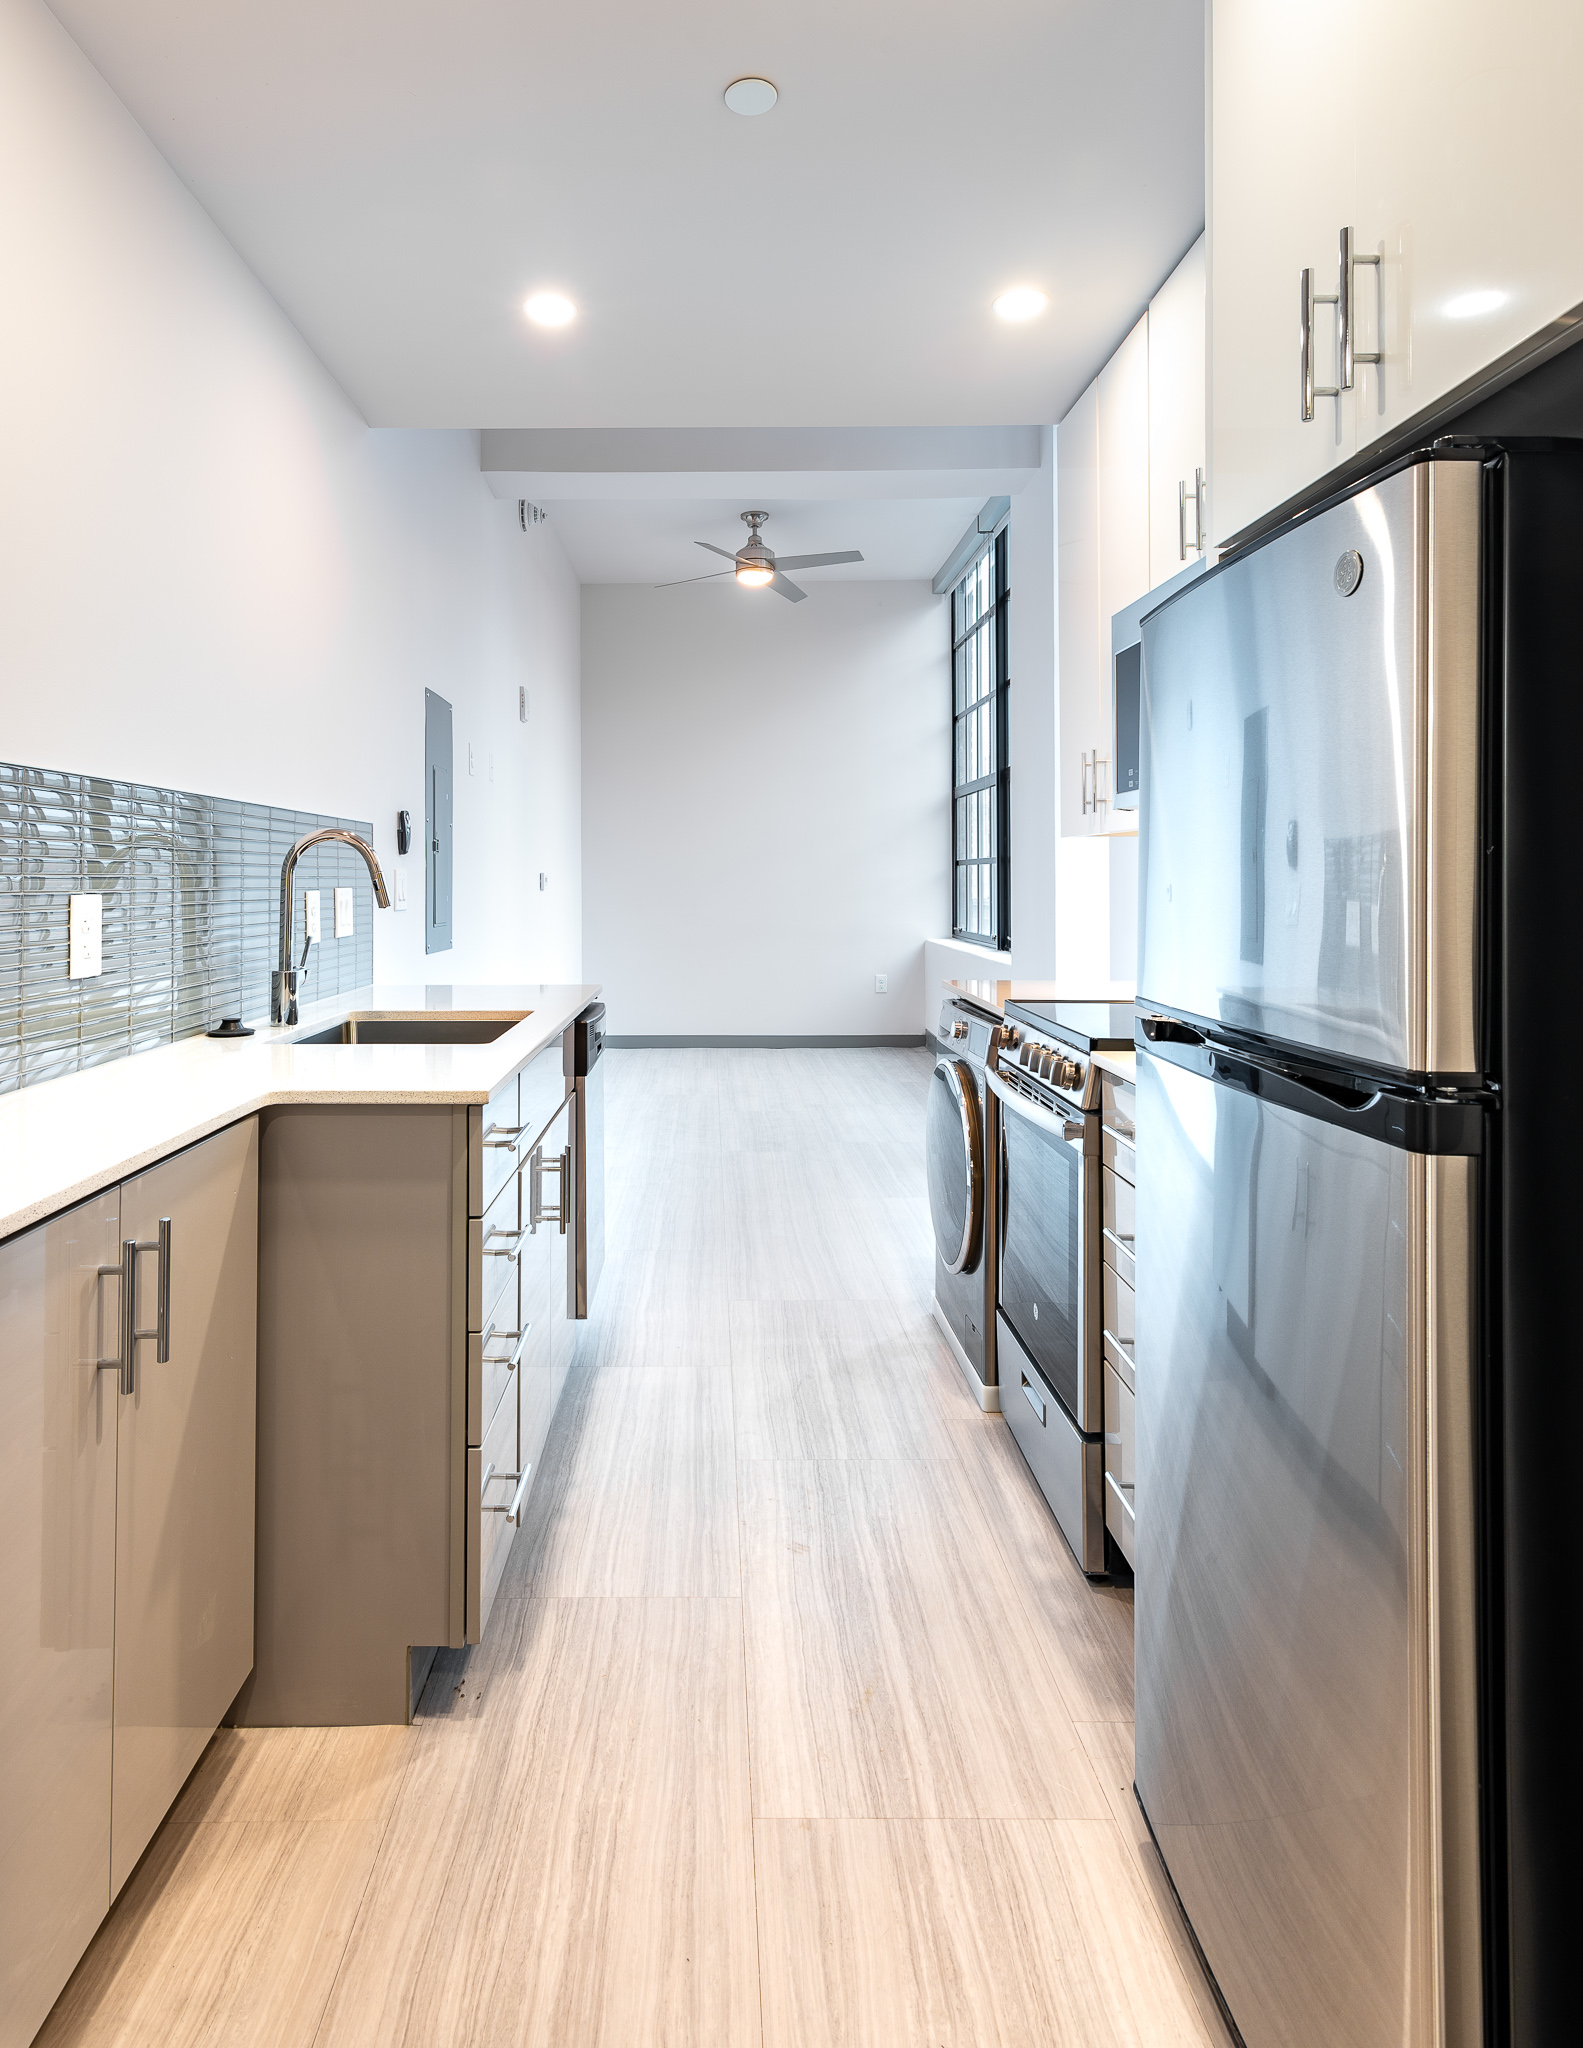 Floor plan 6 is a micro apartment with a custom kitchen that features a combination washer/dryer unit. The shotgun-style layout provides uninterrupted sight lines throughout the whole apartment. / Image: Phil Armstrong, Cincinnati Refined // Published: 12.25.19